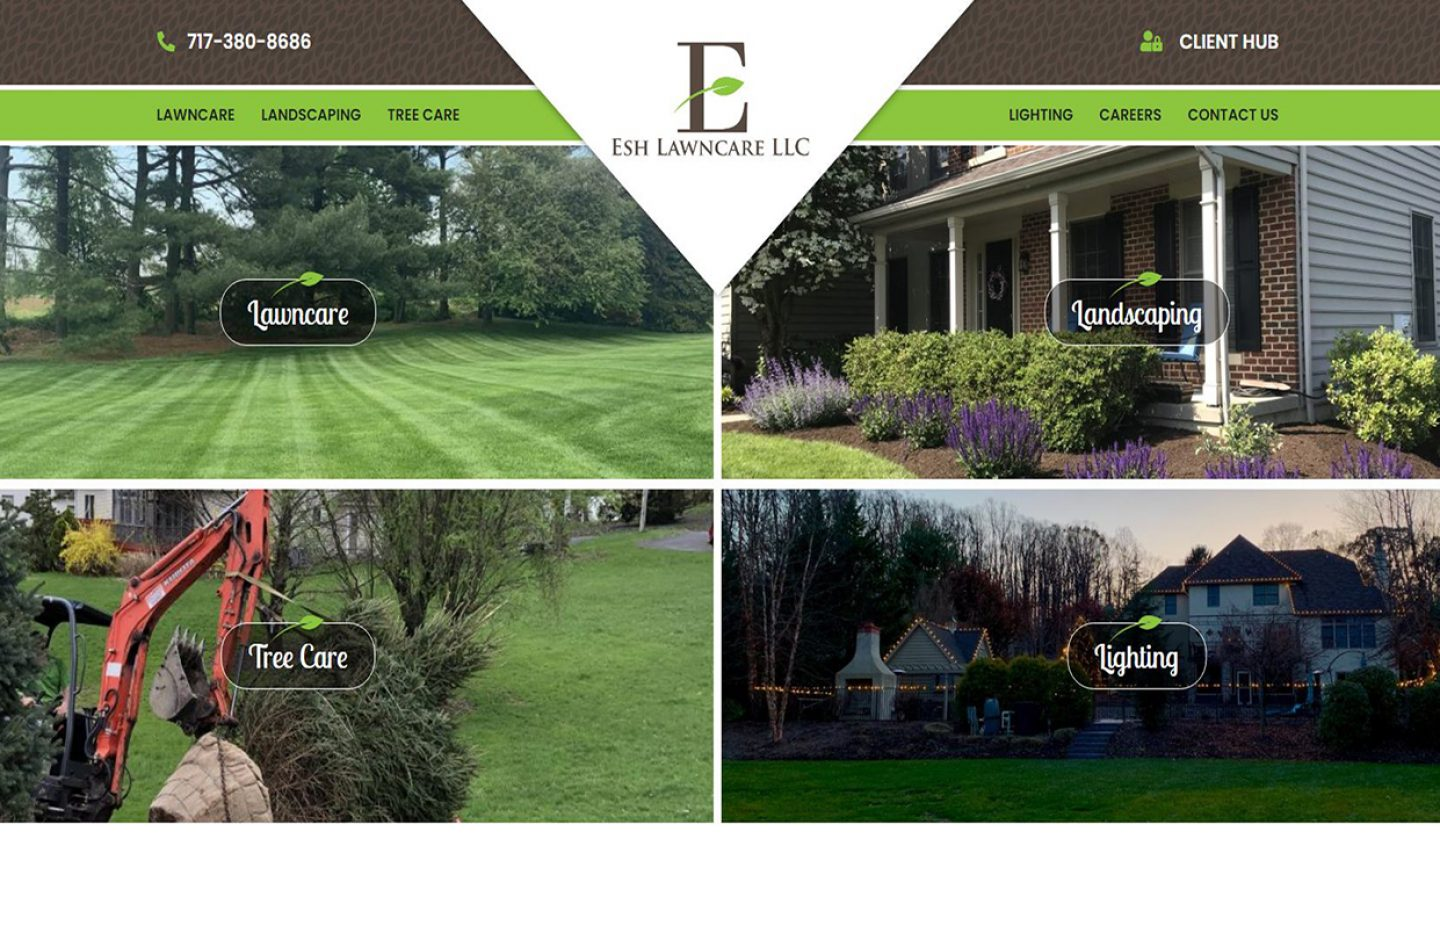 Esh Lawncare